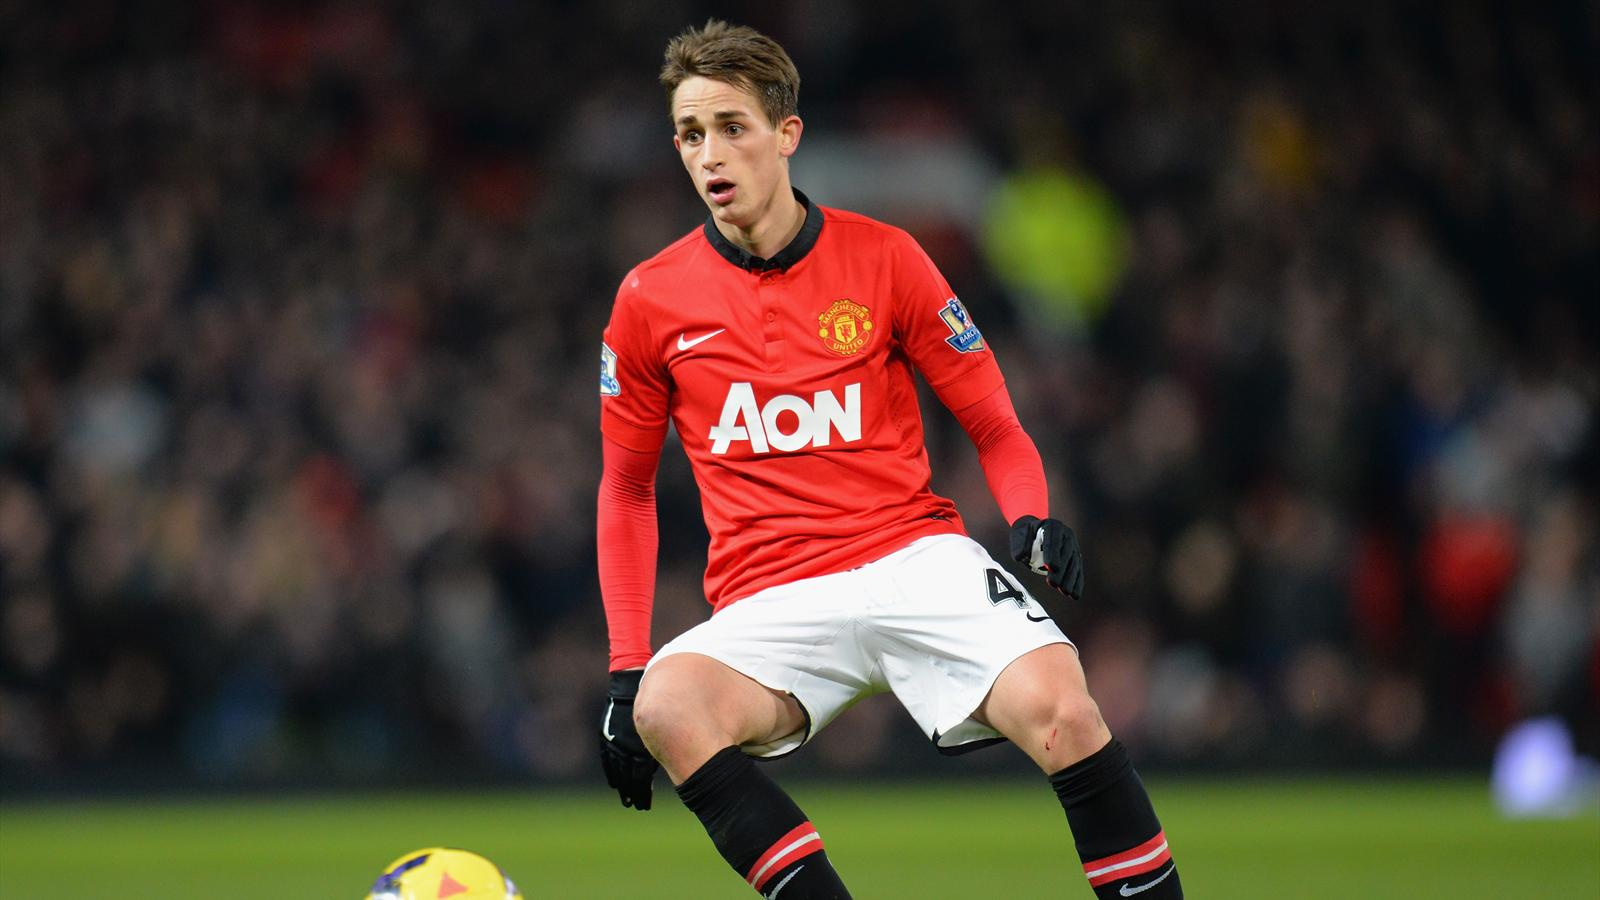 Bildtext:MANCHESTER, ENGLAND - JANUARY 11: Adnan Januzaj of Manchester United in action during the Barclays Premier League match between Manchester United and Swansea City at Old Trafford on January 11, 2014 in Manchester, England. (Photo by Shaun Botteri